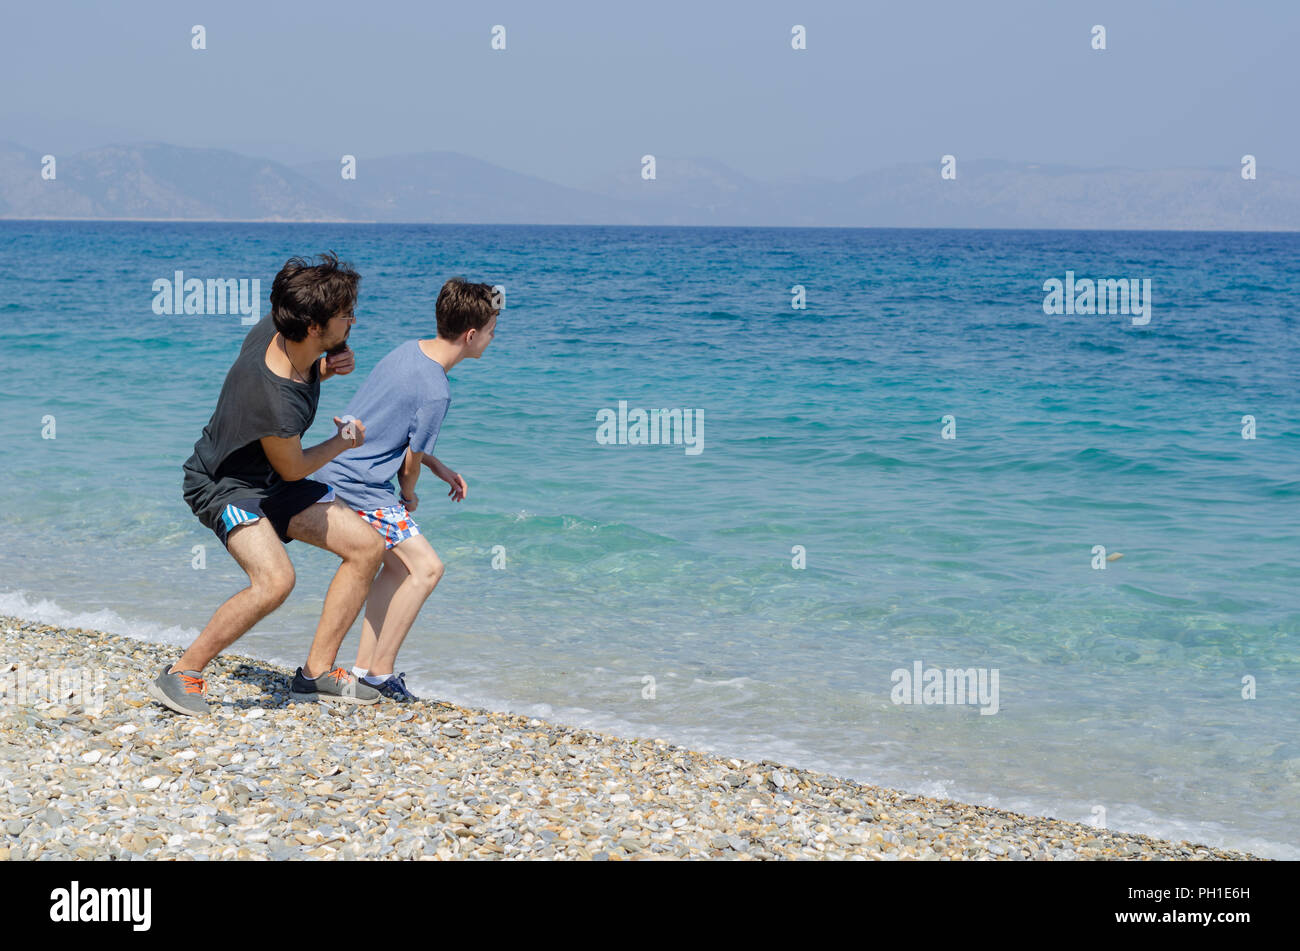 How to Have Fun at the Beach images